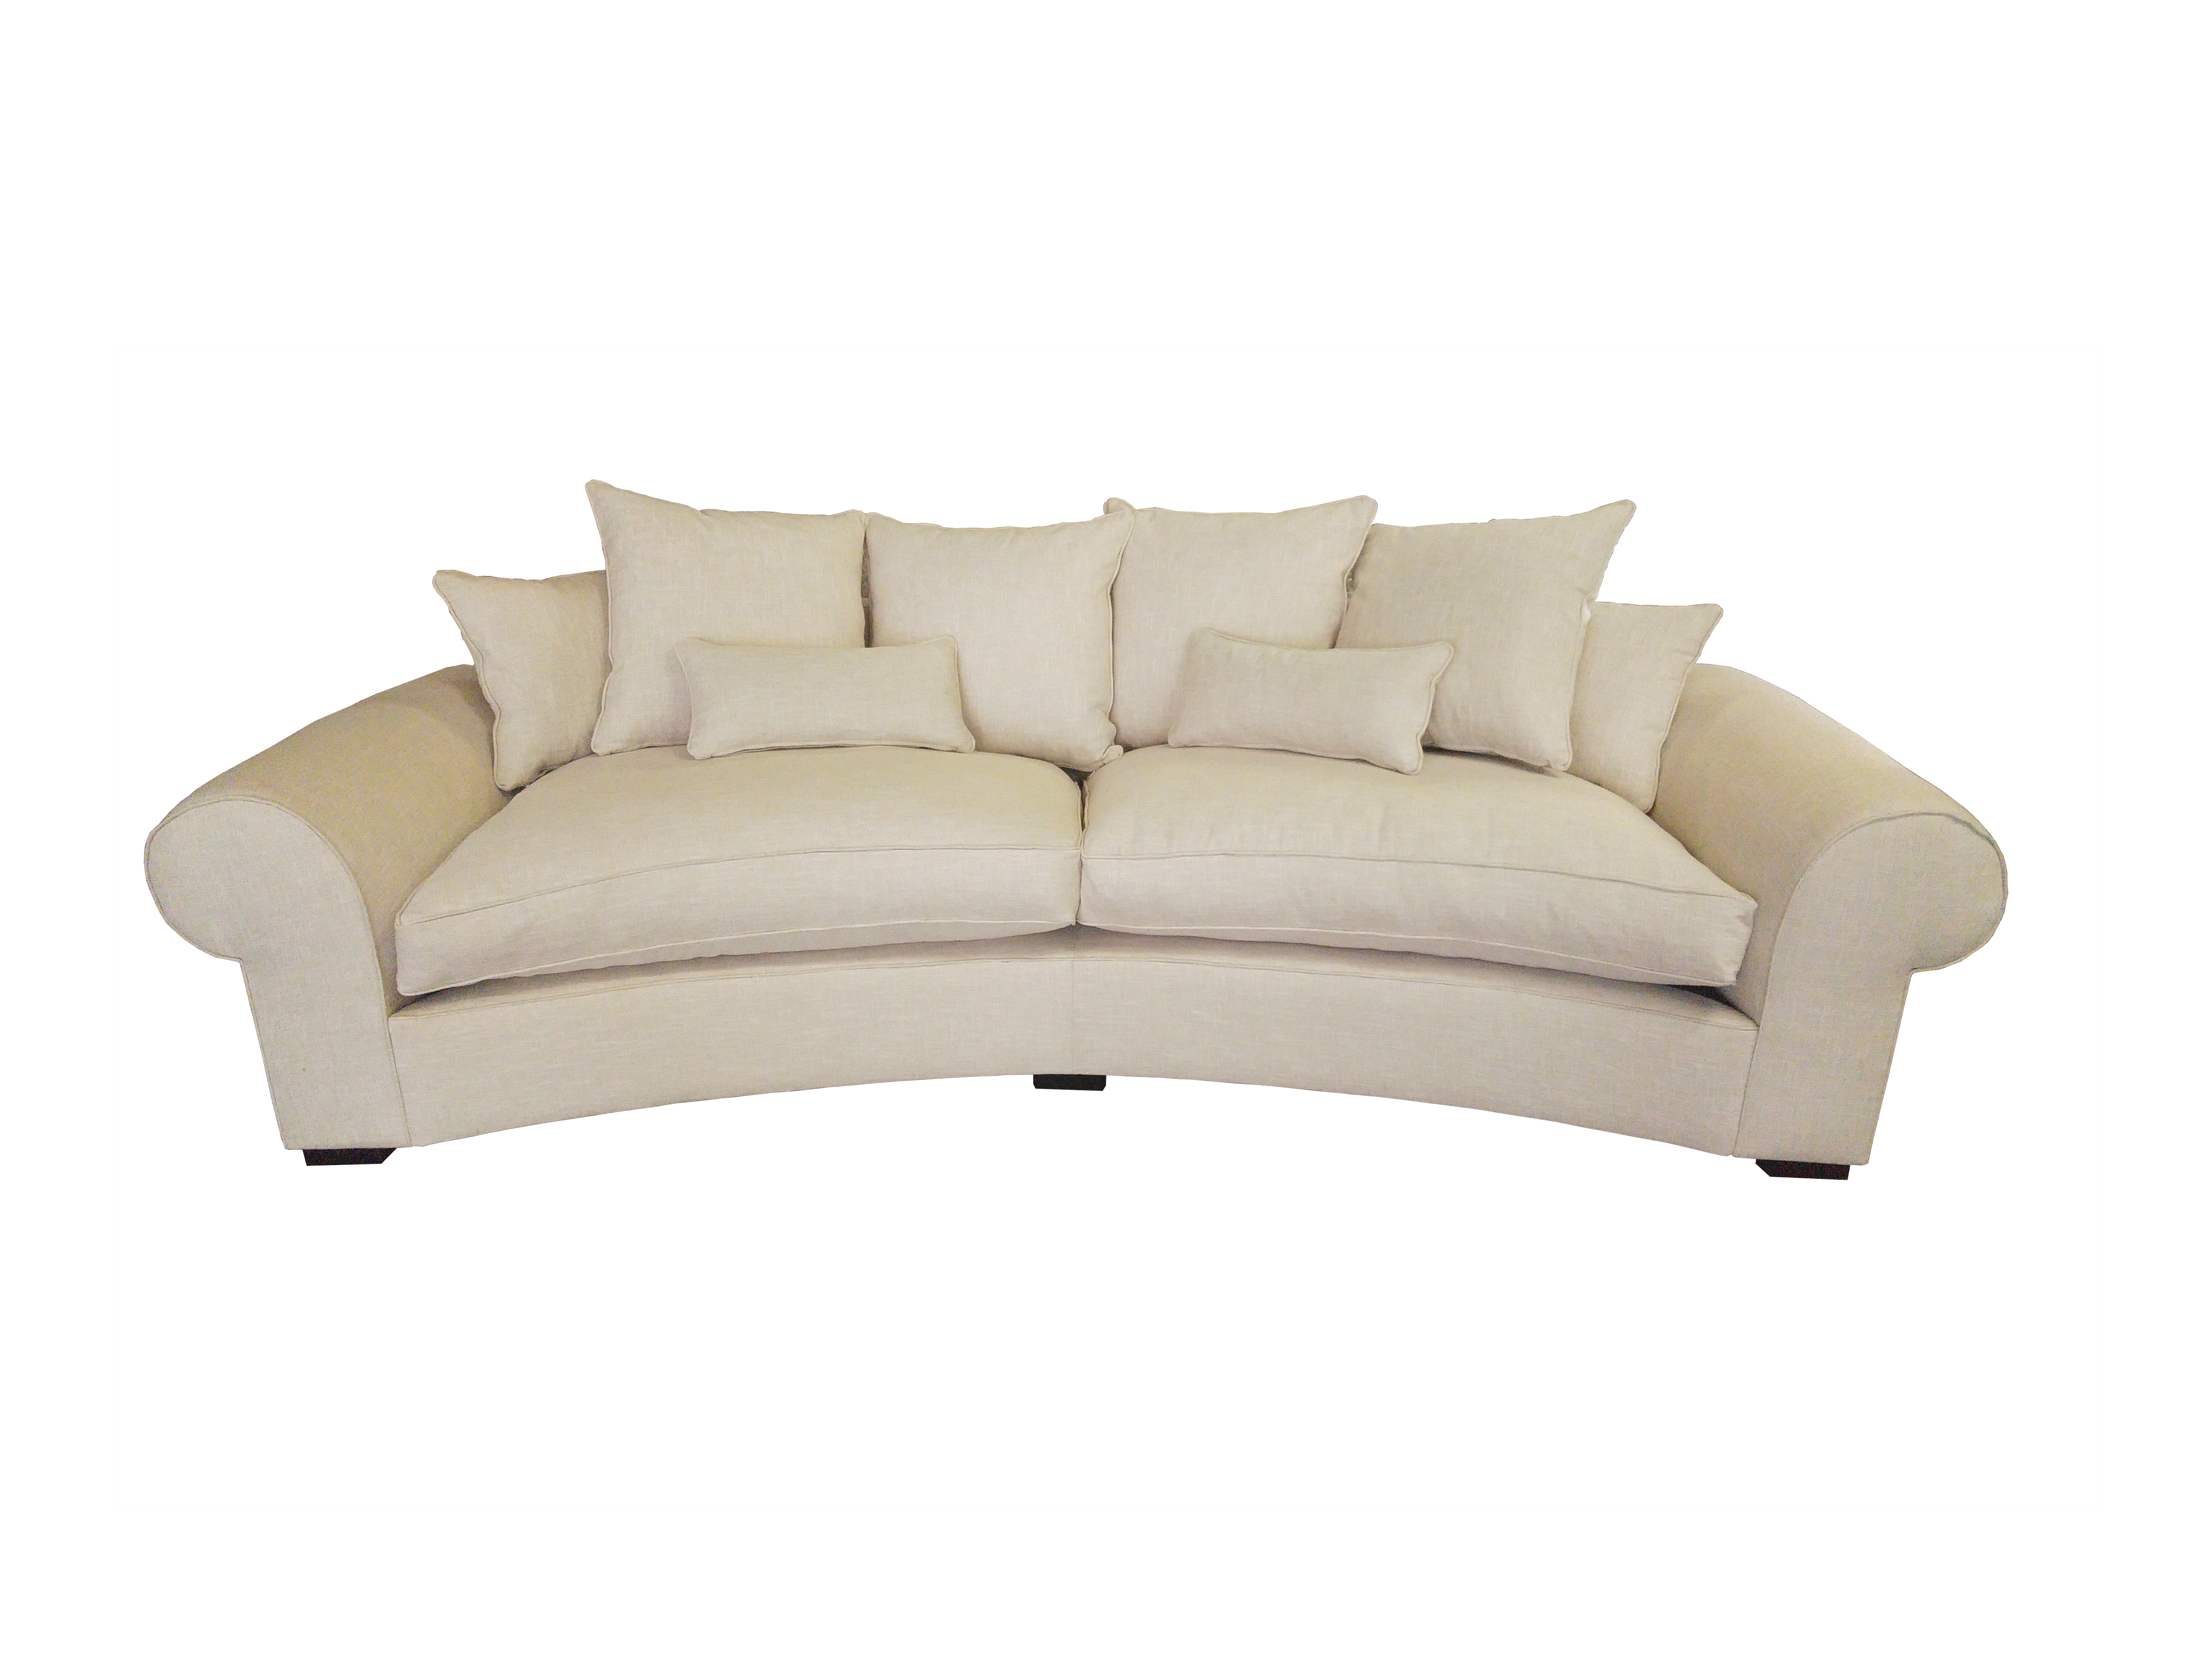 Abby Couch